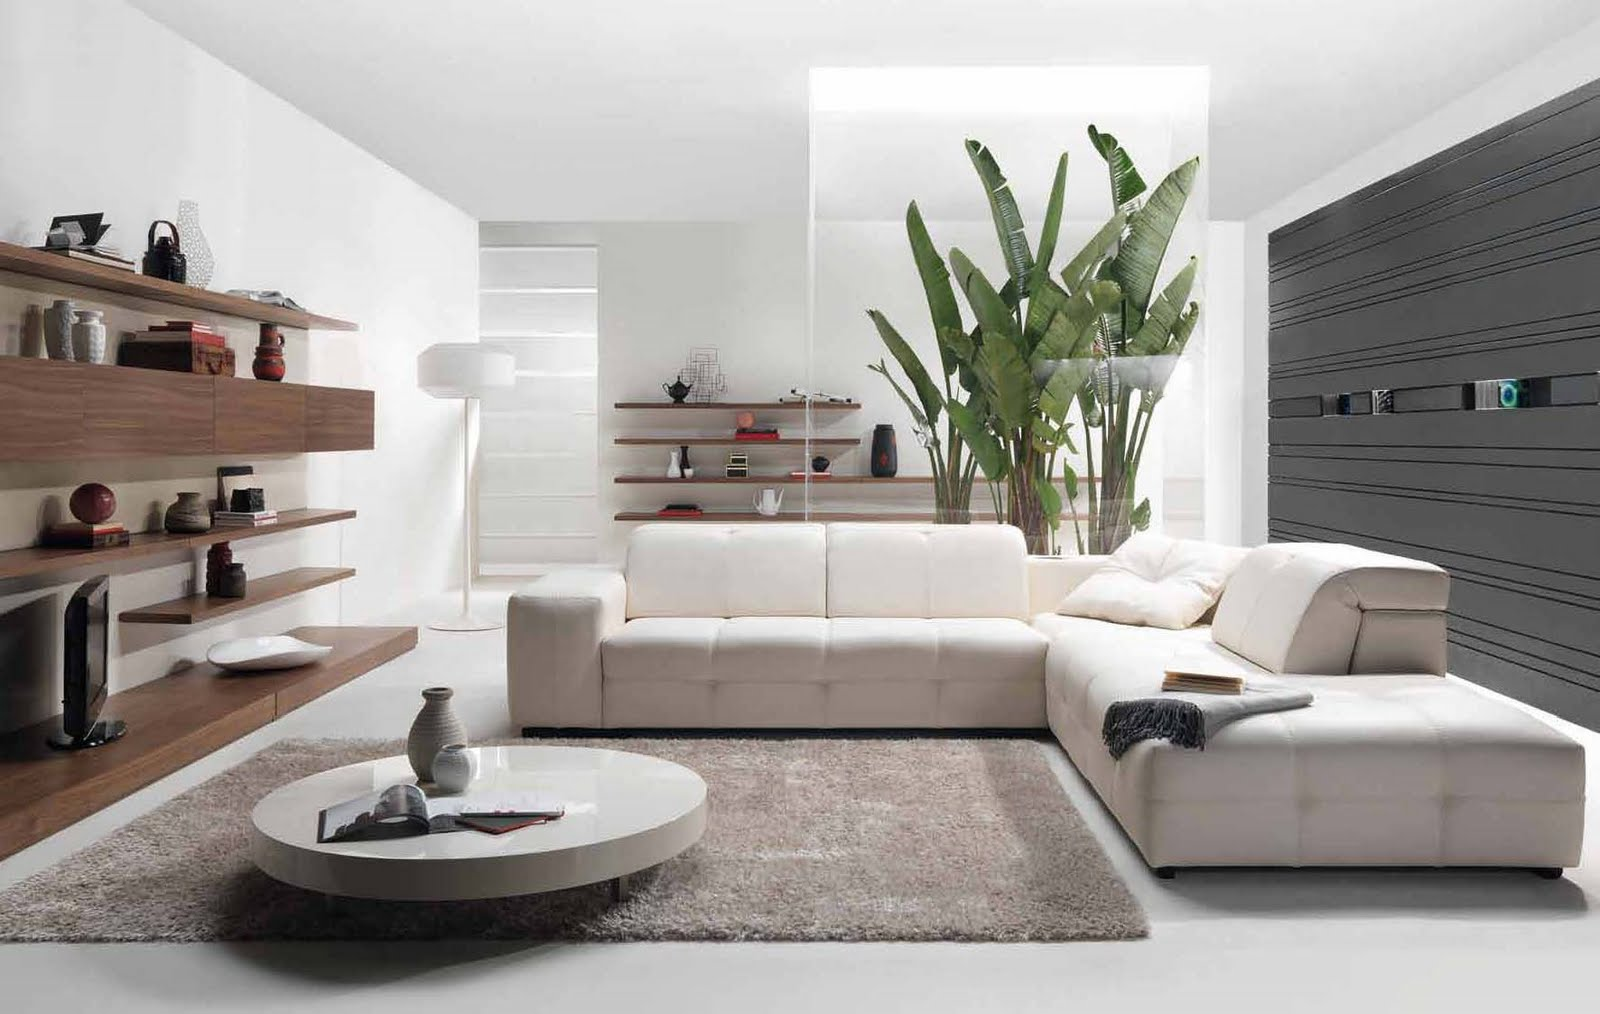 Future house design modern living room interior design styles 2010 by natuzzi Design interior